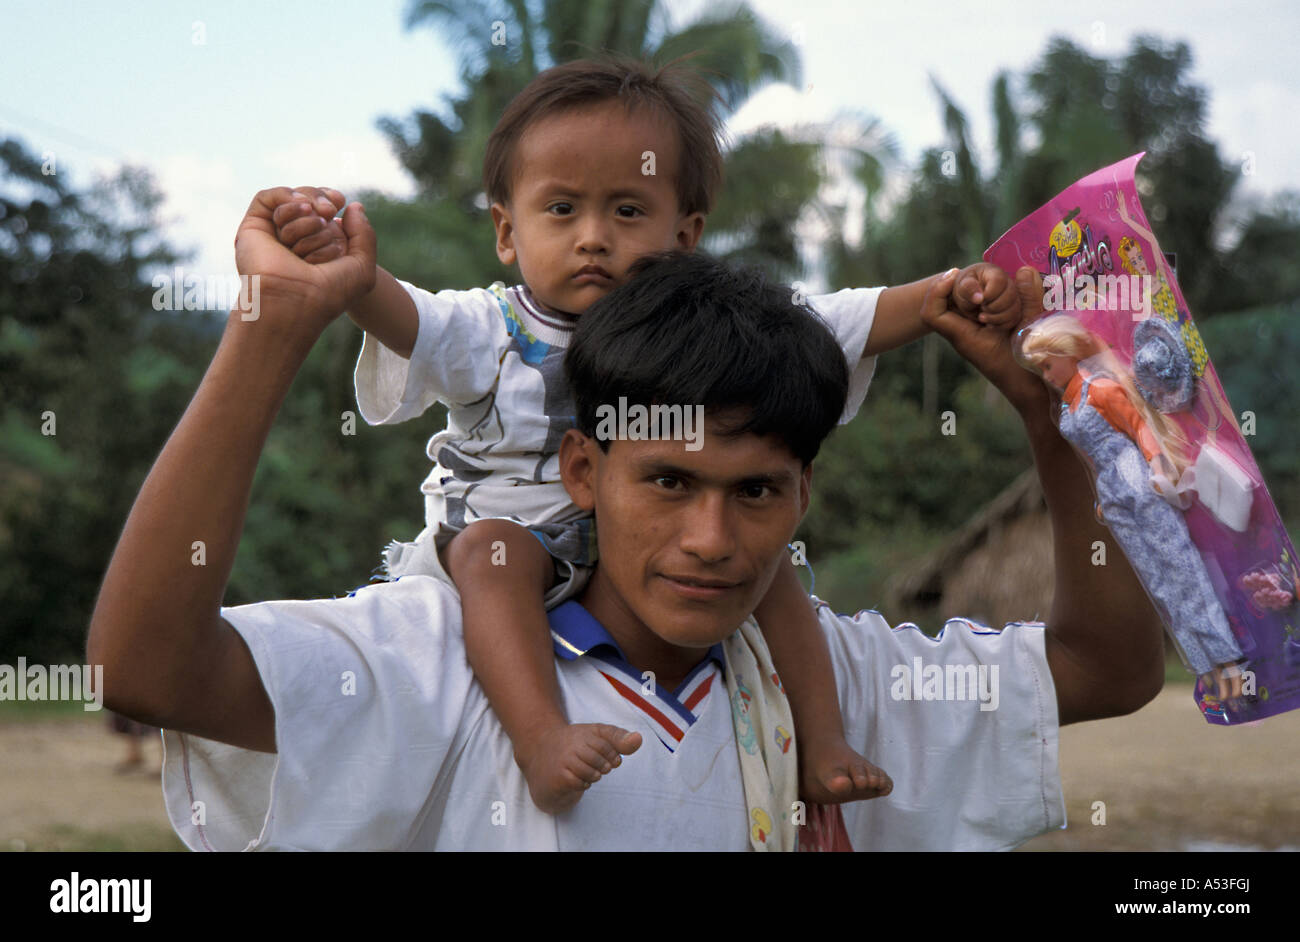 Painet ha0705 5635 guatemala father child christmas present naranhal peten country developing nation less economically - Stock Image